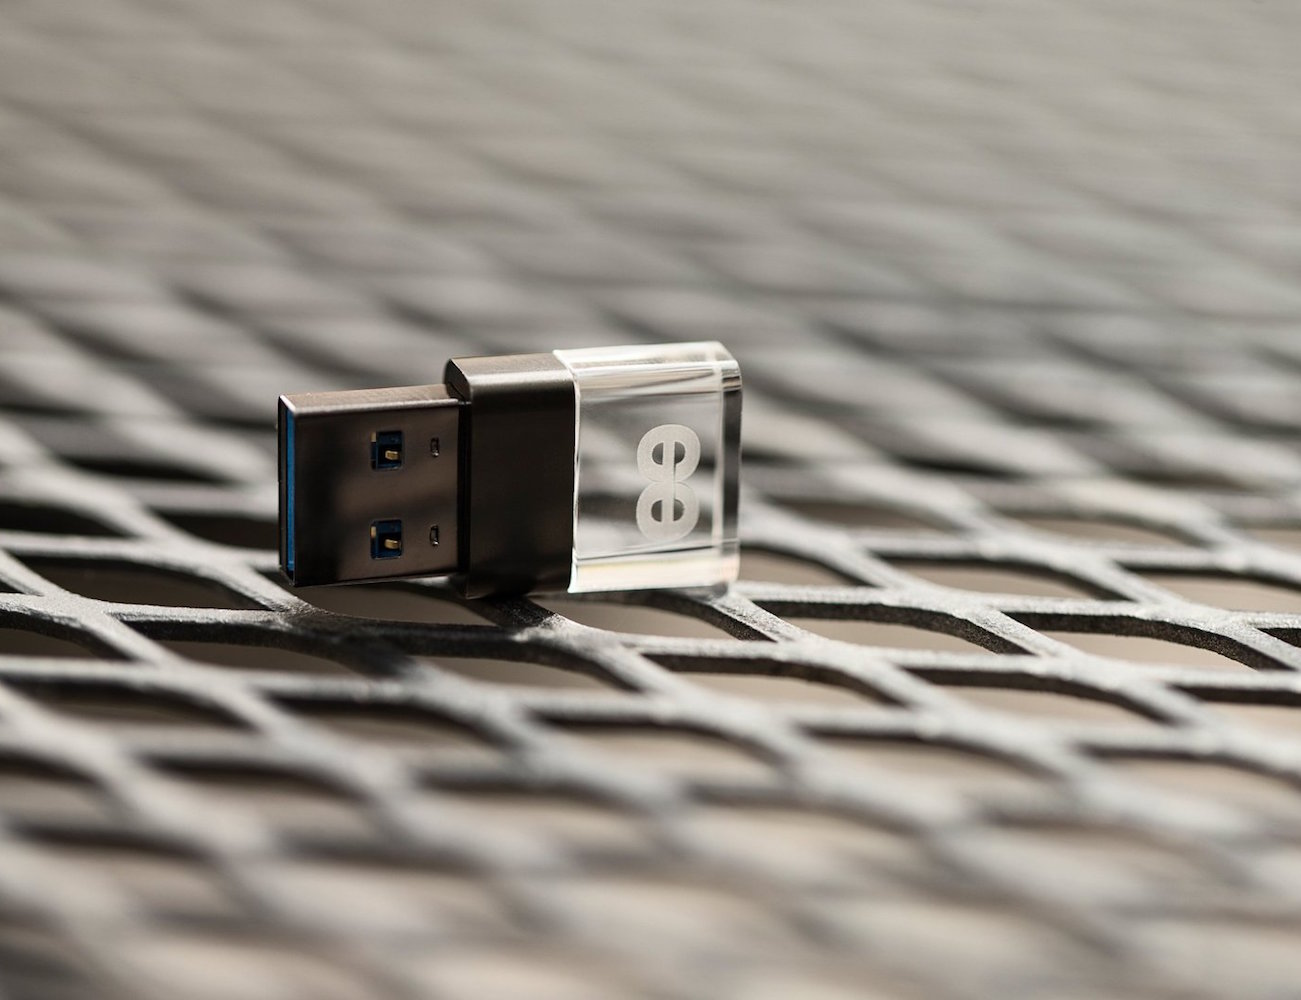 Leef Ice 3.0 – The Copper 64GB Flash Drive